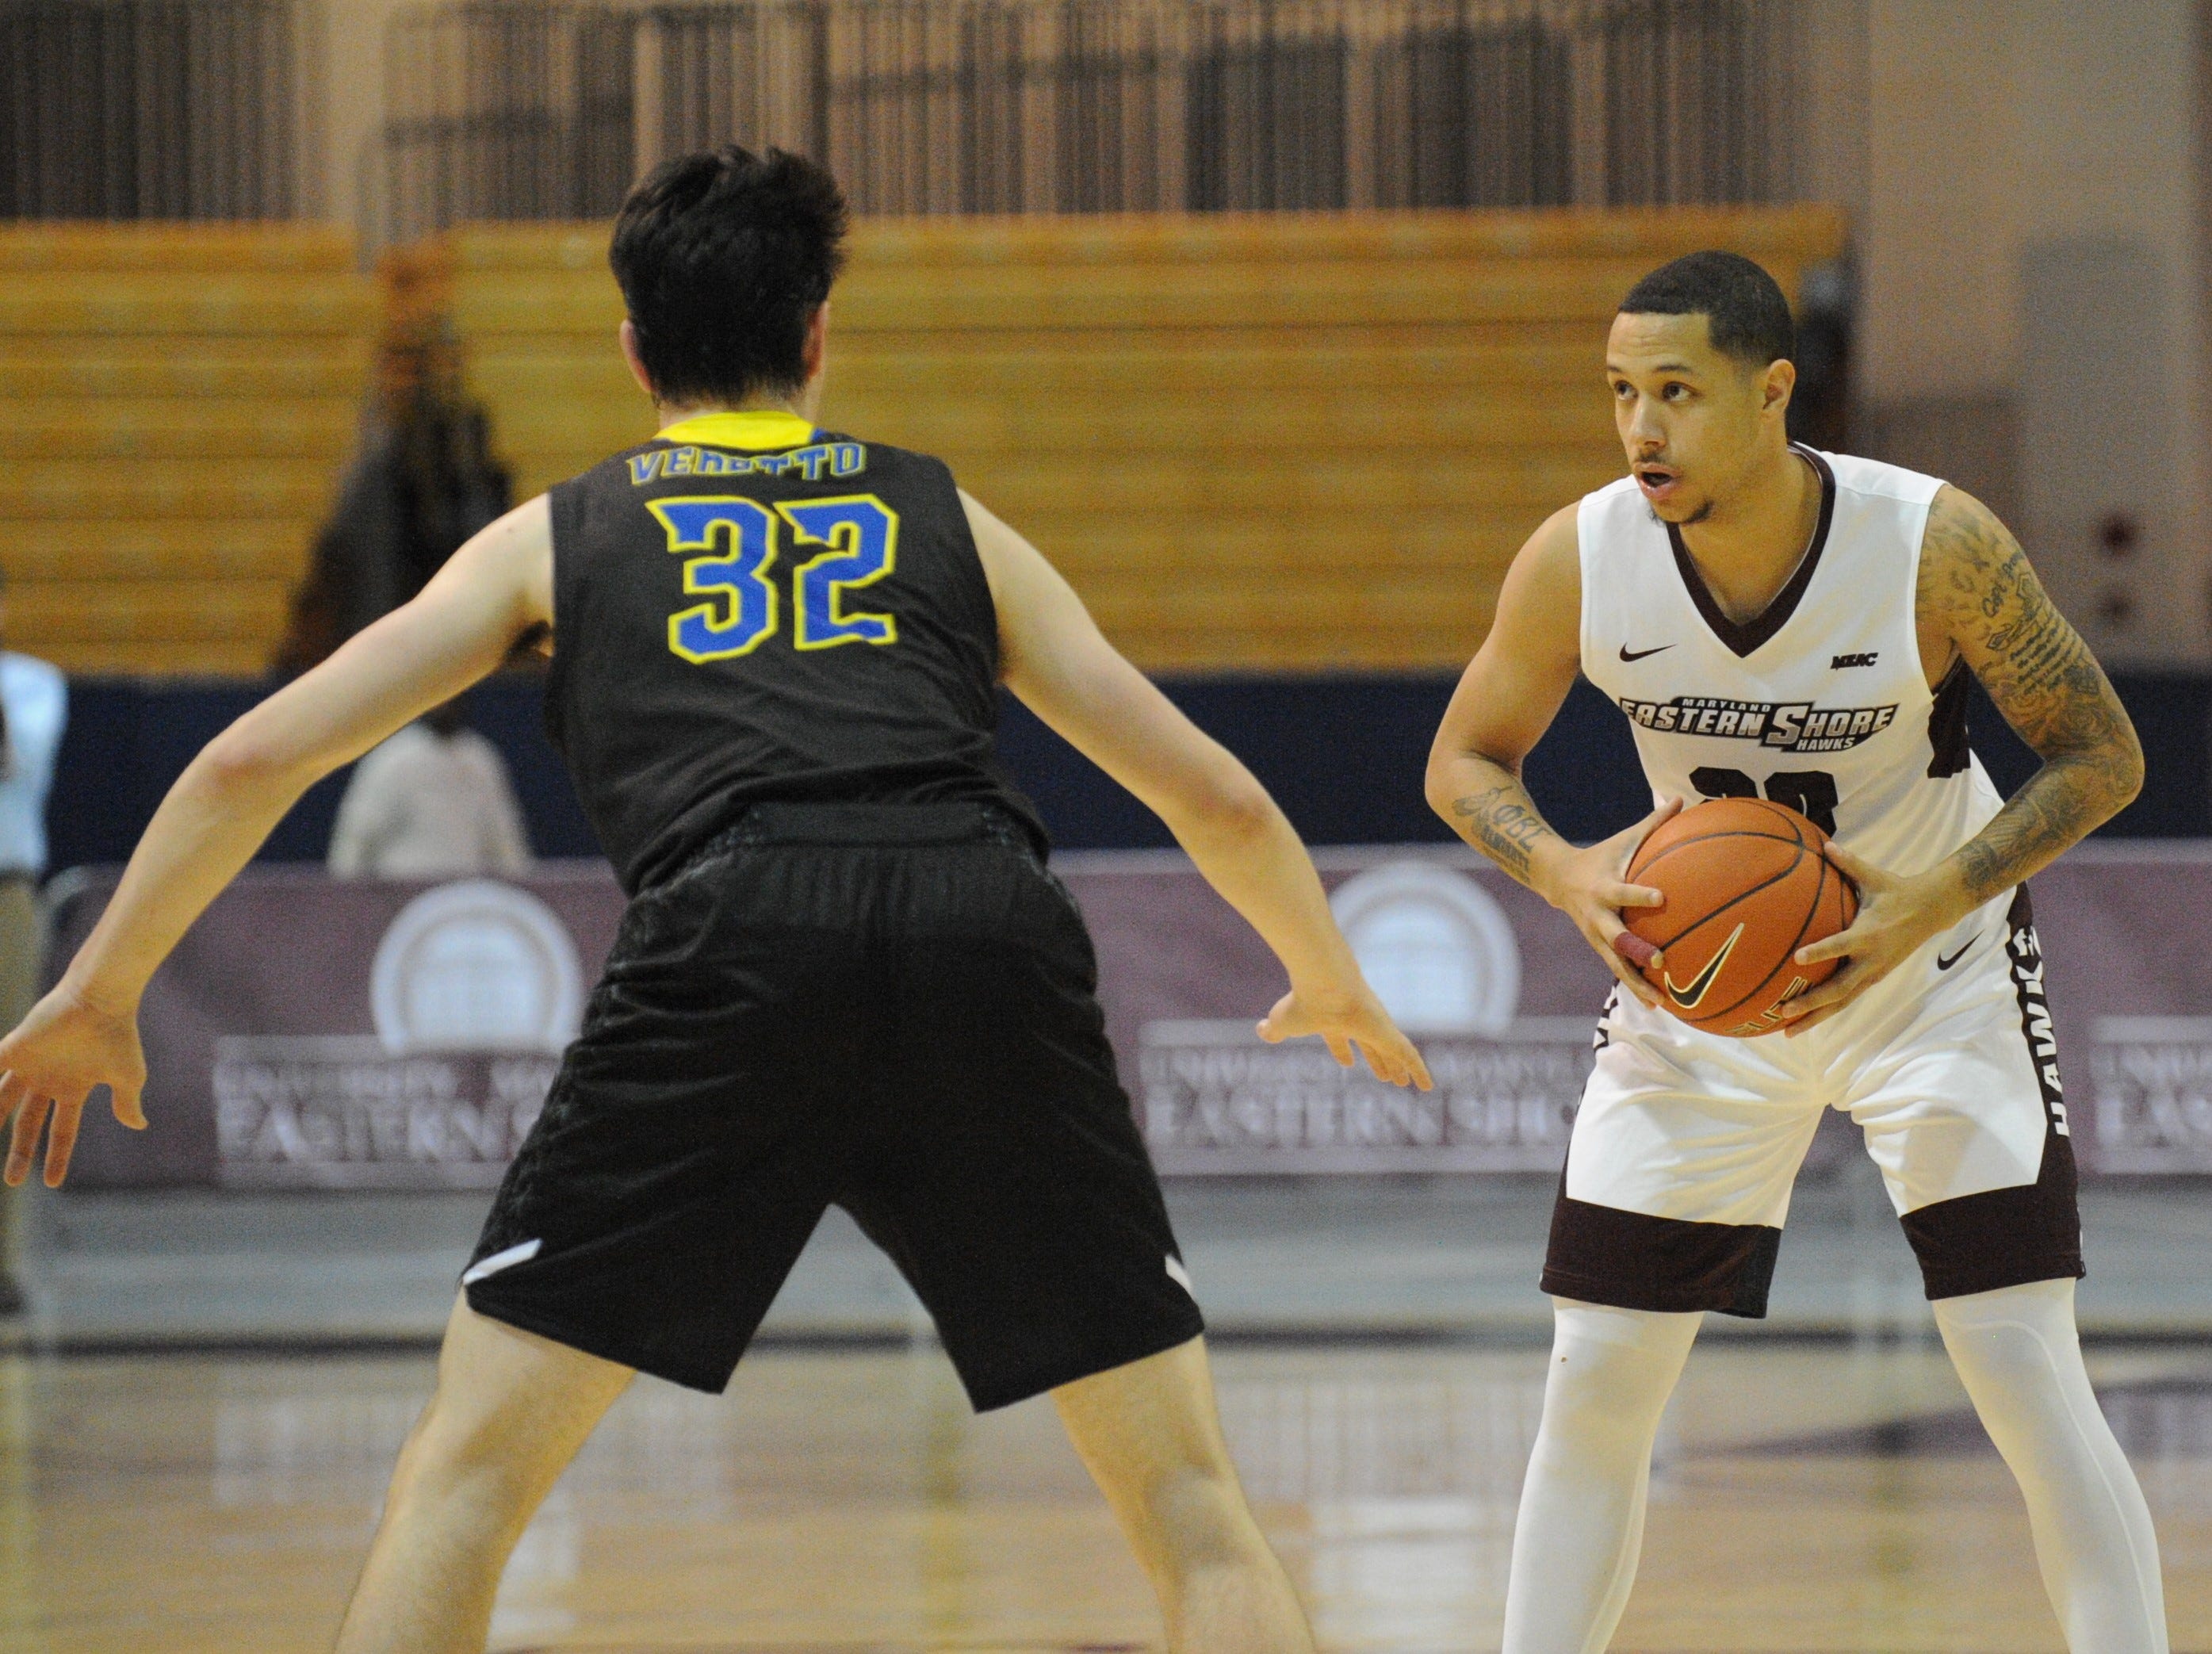 University of Maryland Eastern Shore guard Dontae Caldwell looks to pass against the University of Delaware on Friday, Nov. 30, 2018. The Blue Hens beat the Hawks, 71-62.